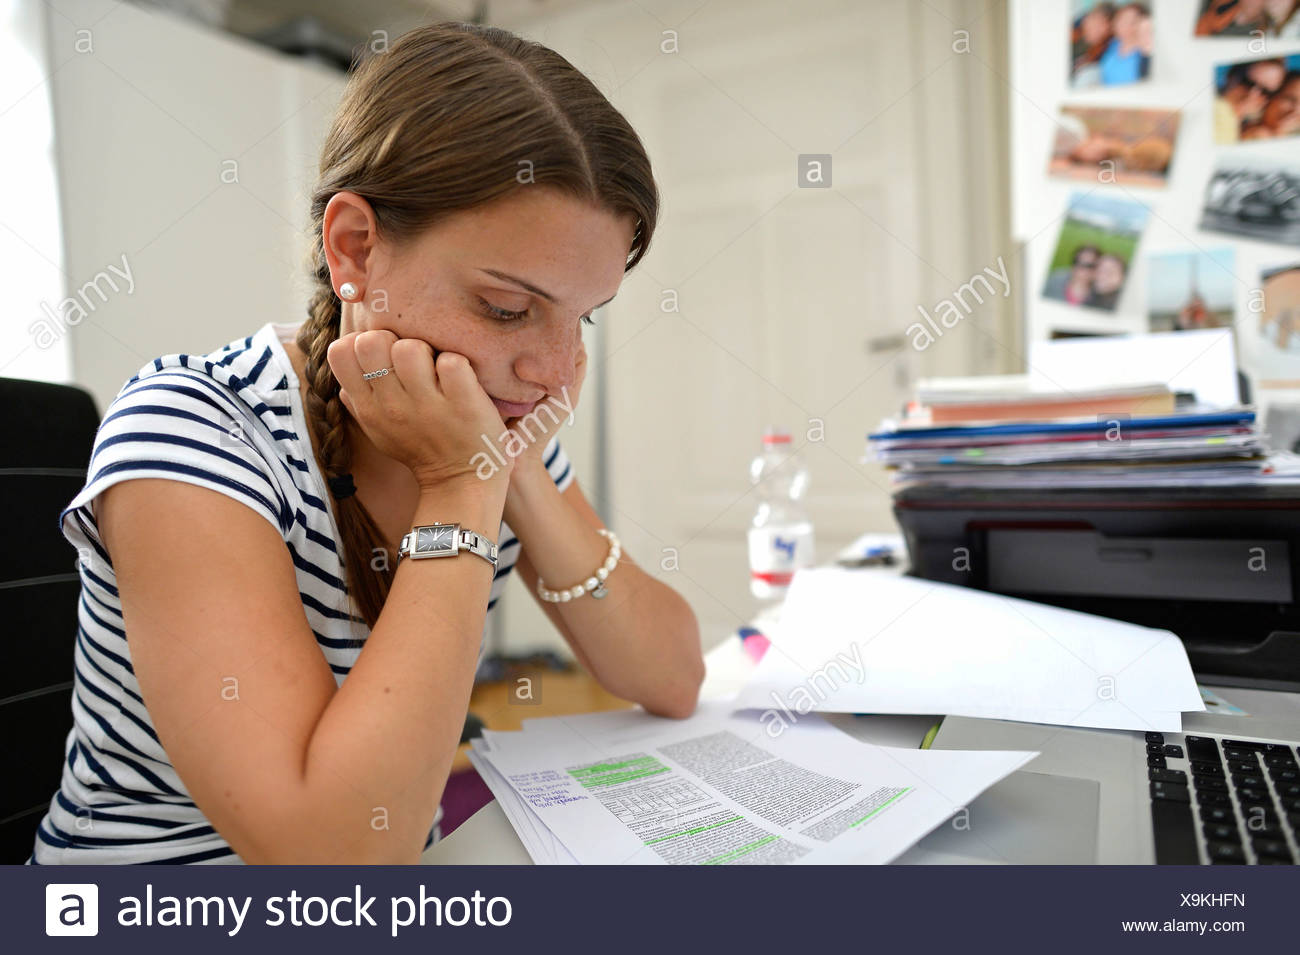 Student learning in a college dorm, pondering, thinking - Stock Image